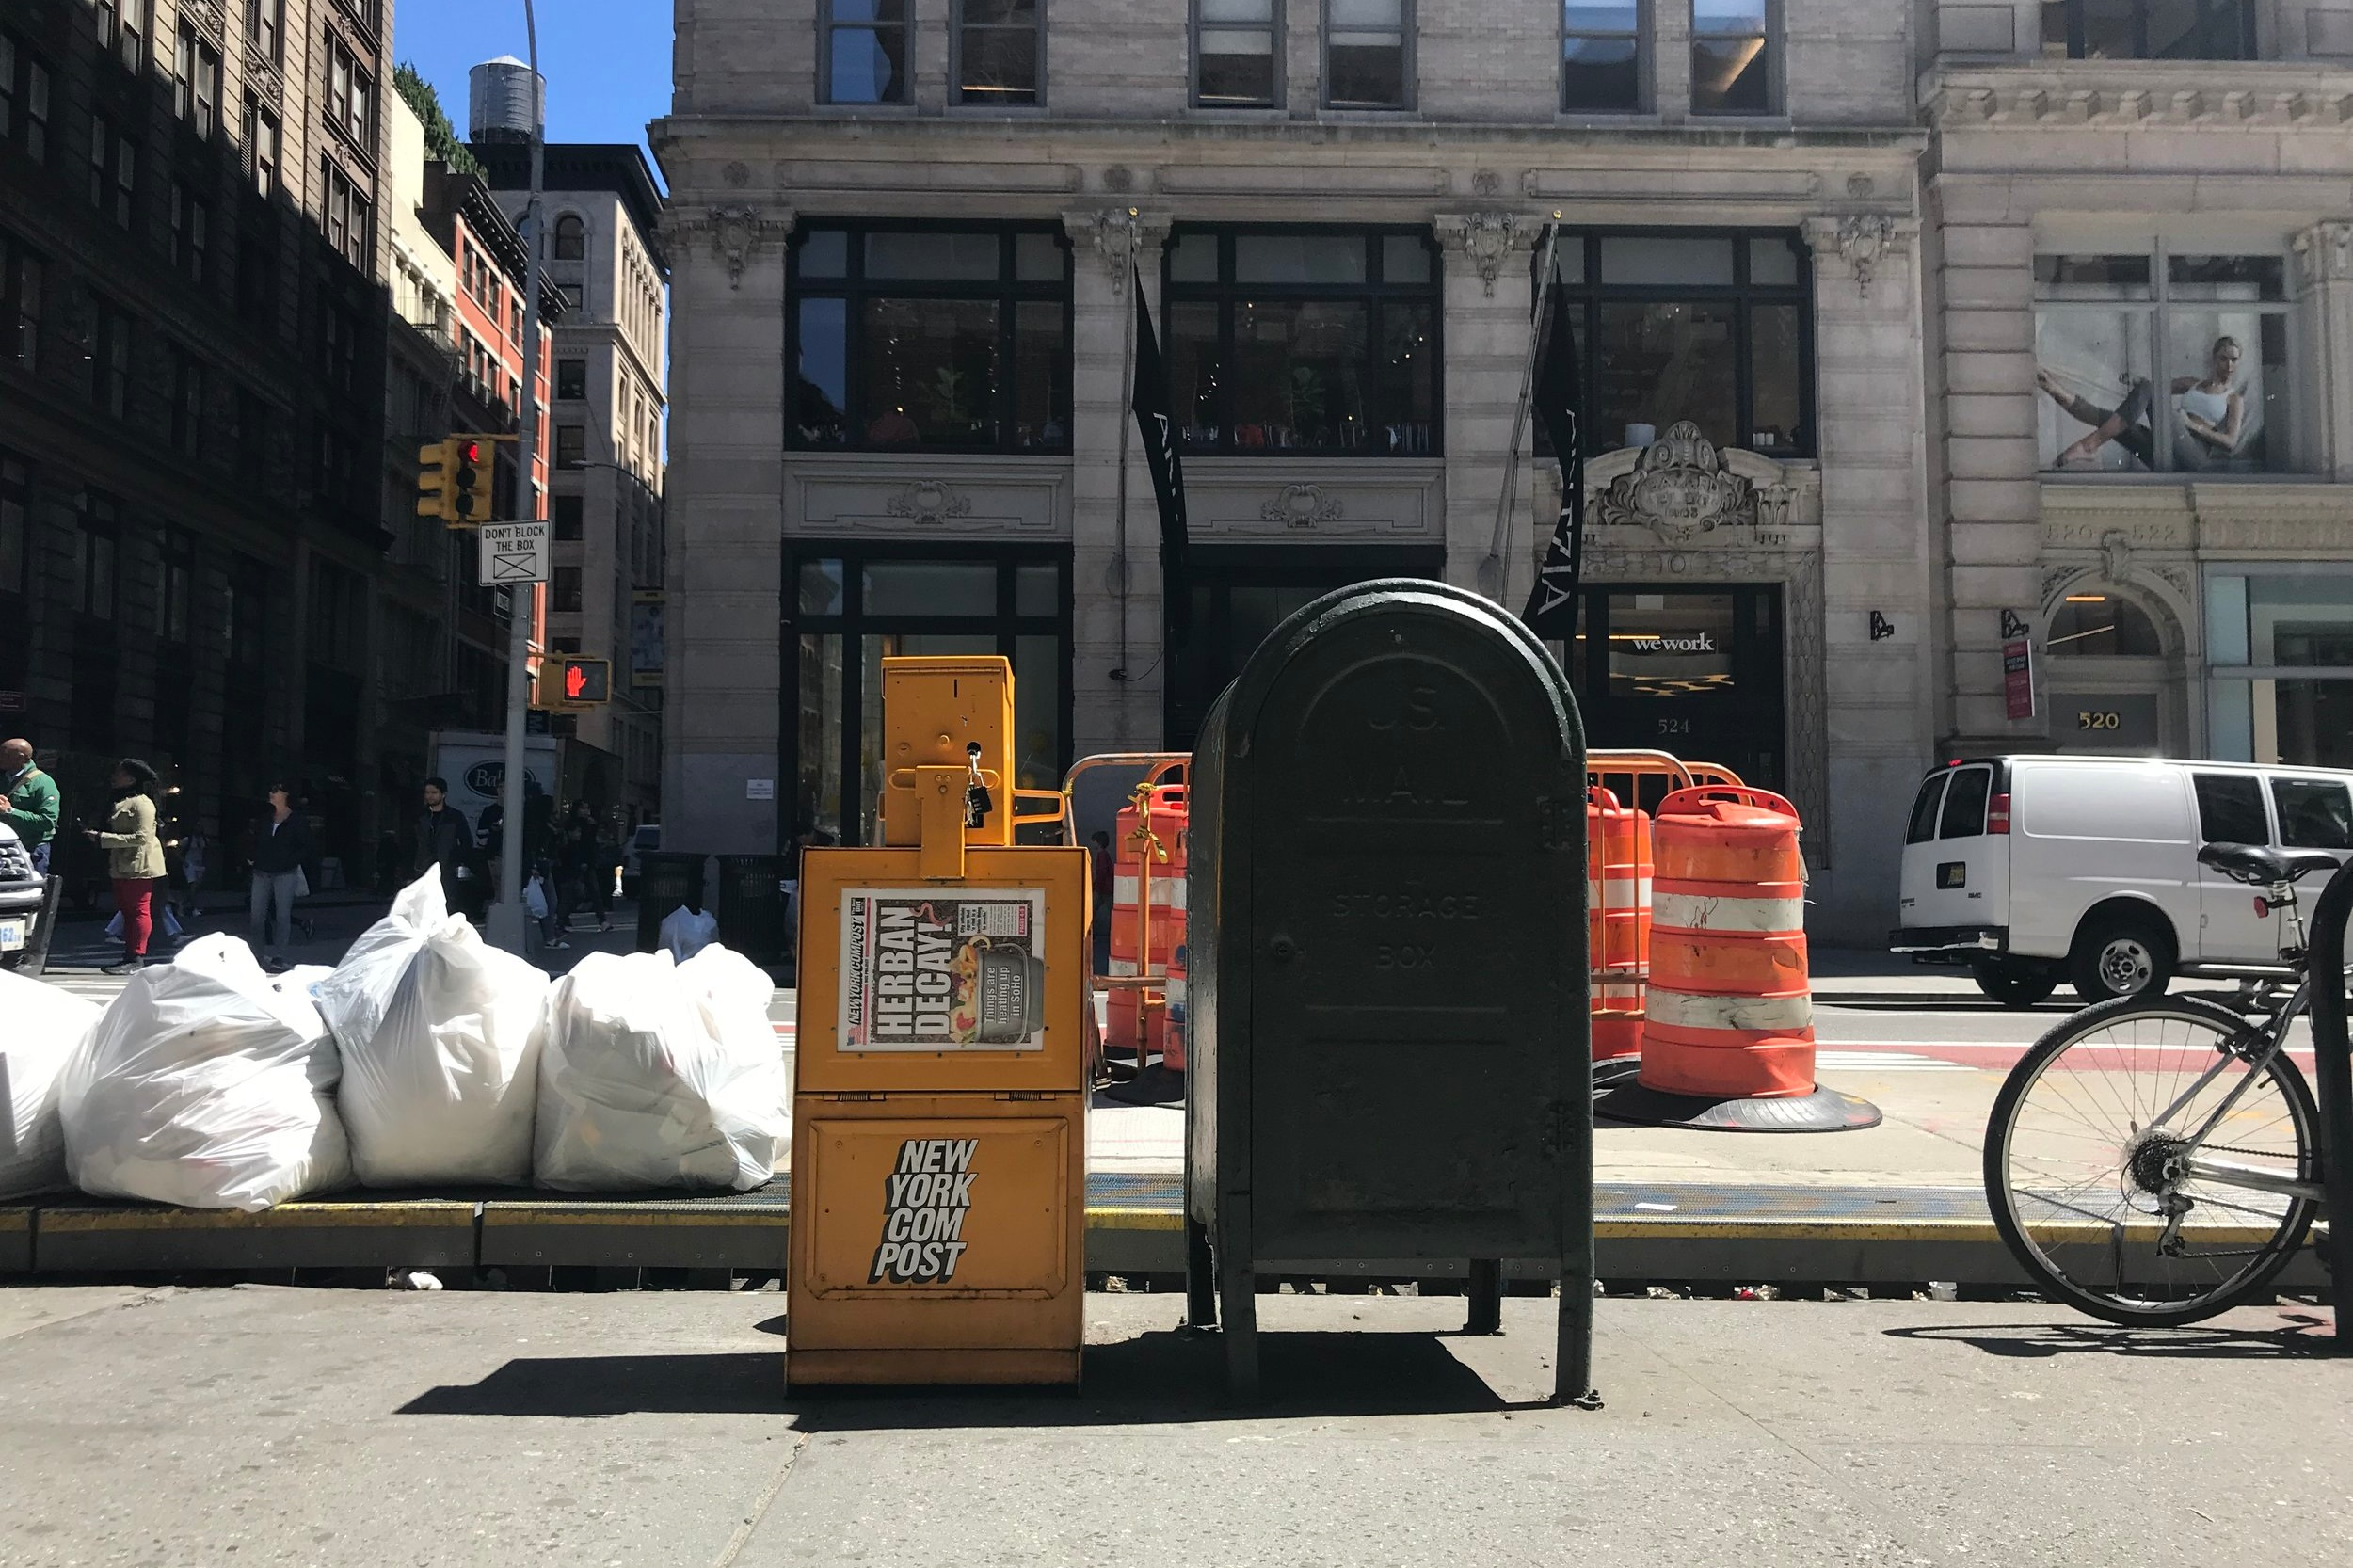 Composting In SoHo - June 28, 2019Last year, Loci participated in the AIA NY's Zero Waste Challenge and increased our existing efforts to reduce the amount of paper, plastics, and trash we generate each day. One of the biggest challenges we faced during the campaign was finding a place to compost that was easily accessible from our office. Luckily for us, a @nycompostbox landed on Broadway at Spring Street as part of a pilot composting program for the SoHo Broadway community. The program is a collaboration between @commoncompost and @reclaimedorganics. Since its inception, the New York Compost Box has been an excellent way for small businesses in the #SoHo neighborhood to #compost regularly and has helped us reach a 95% diversion rate for our office's waste.